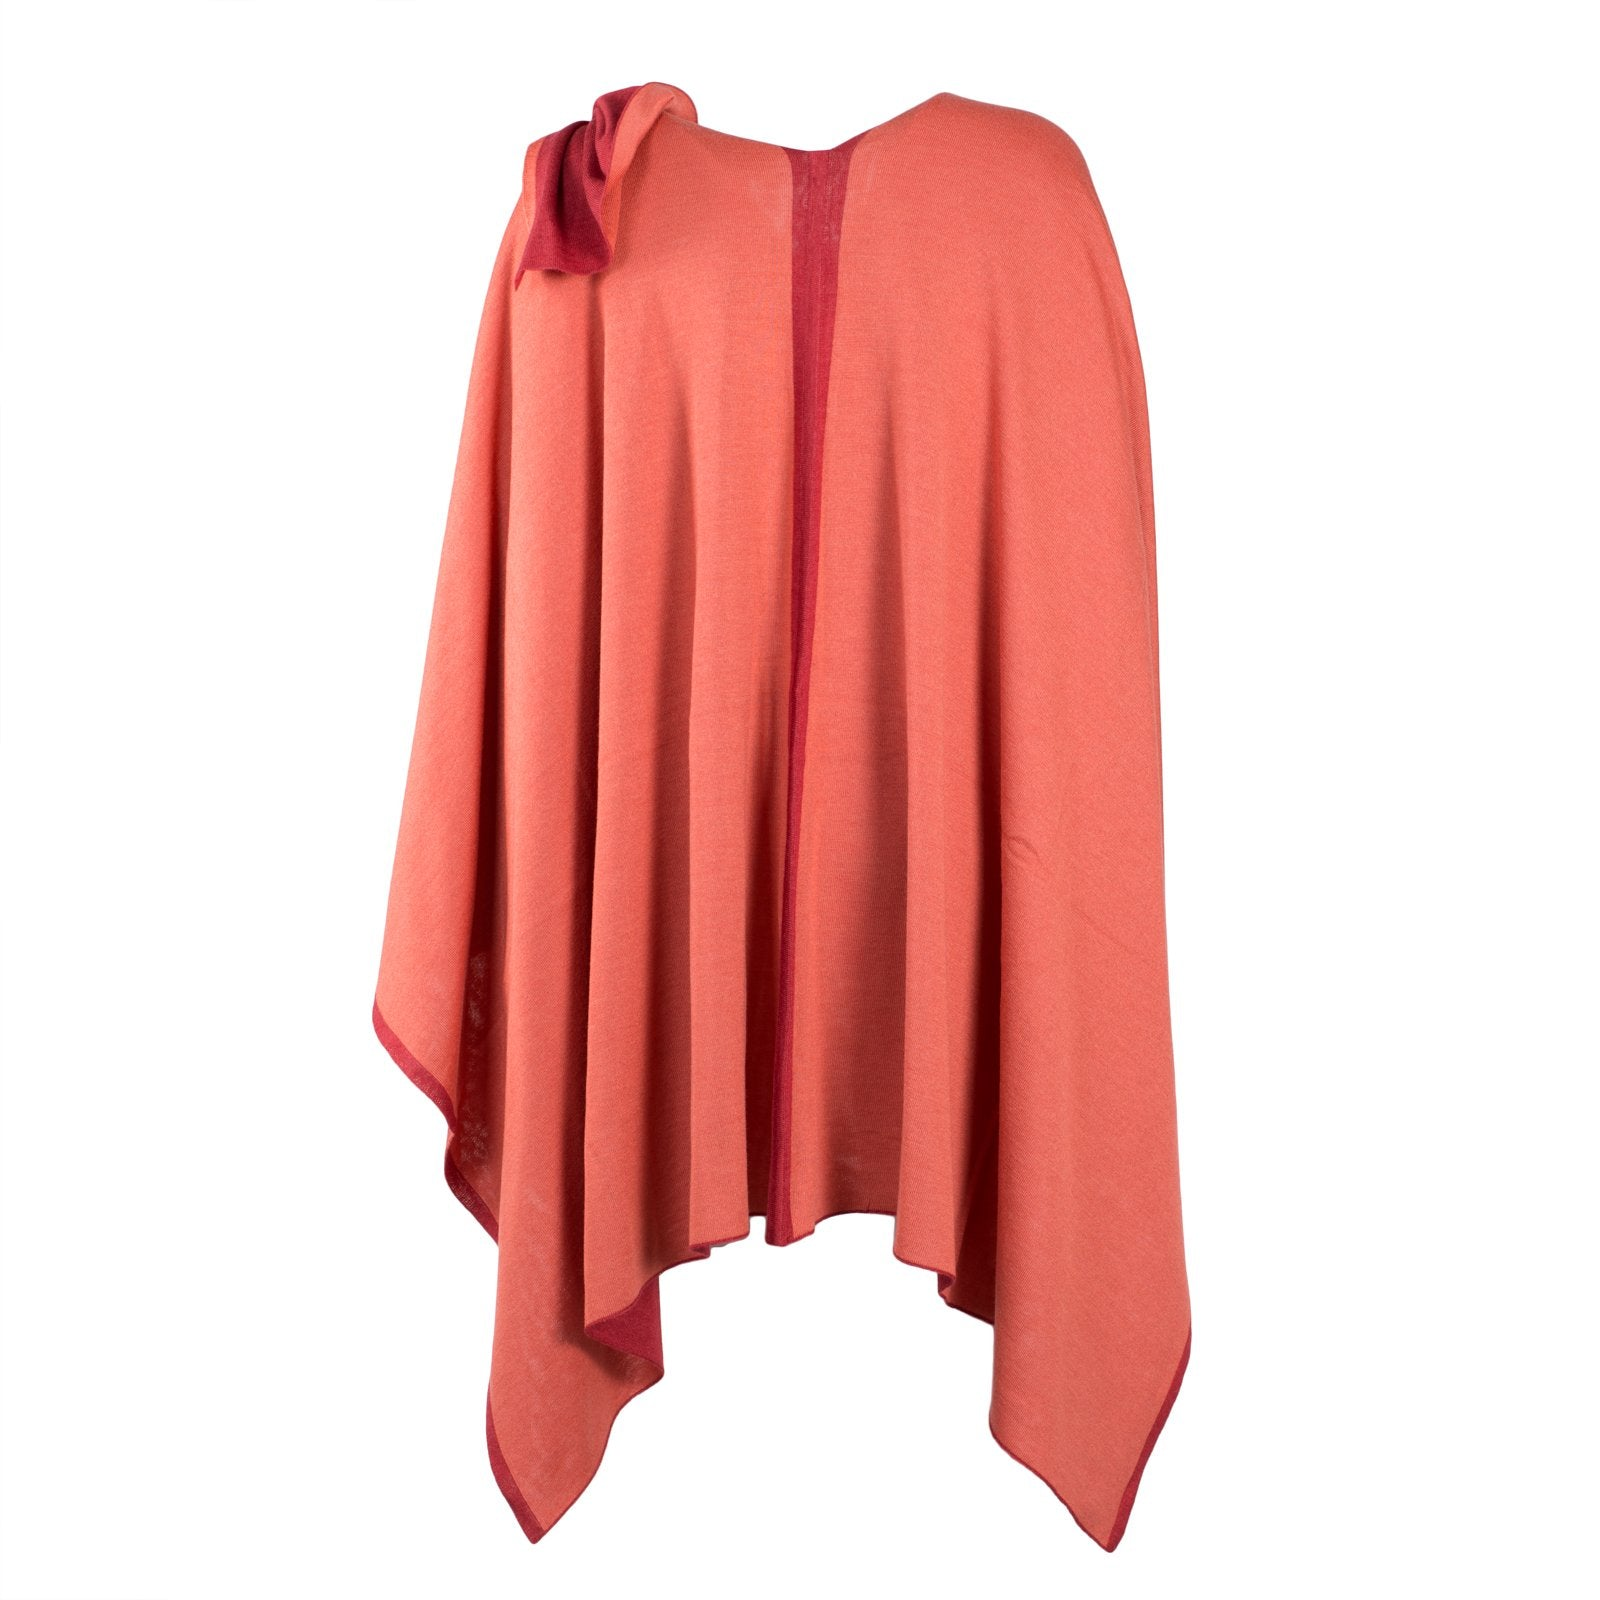 Large Reversible Pashmina Cape in Red and Coral - Jennifer Tattanelli